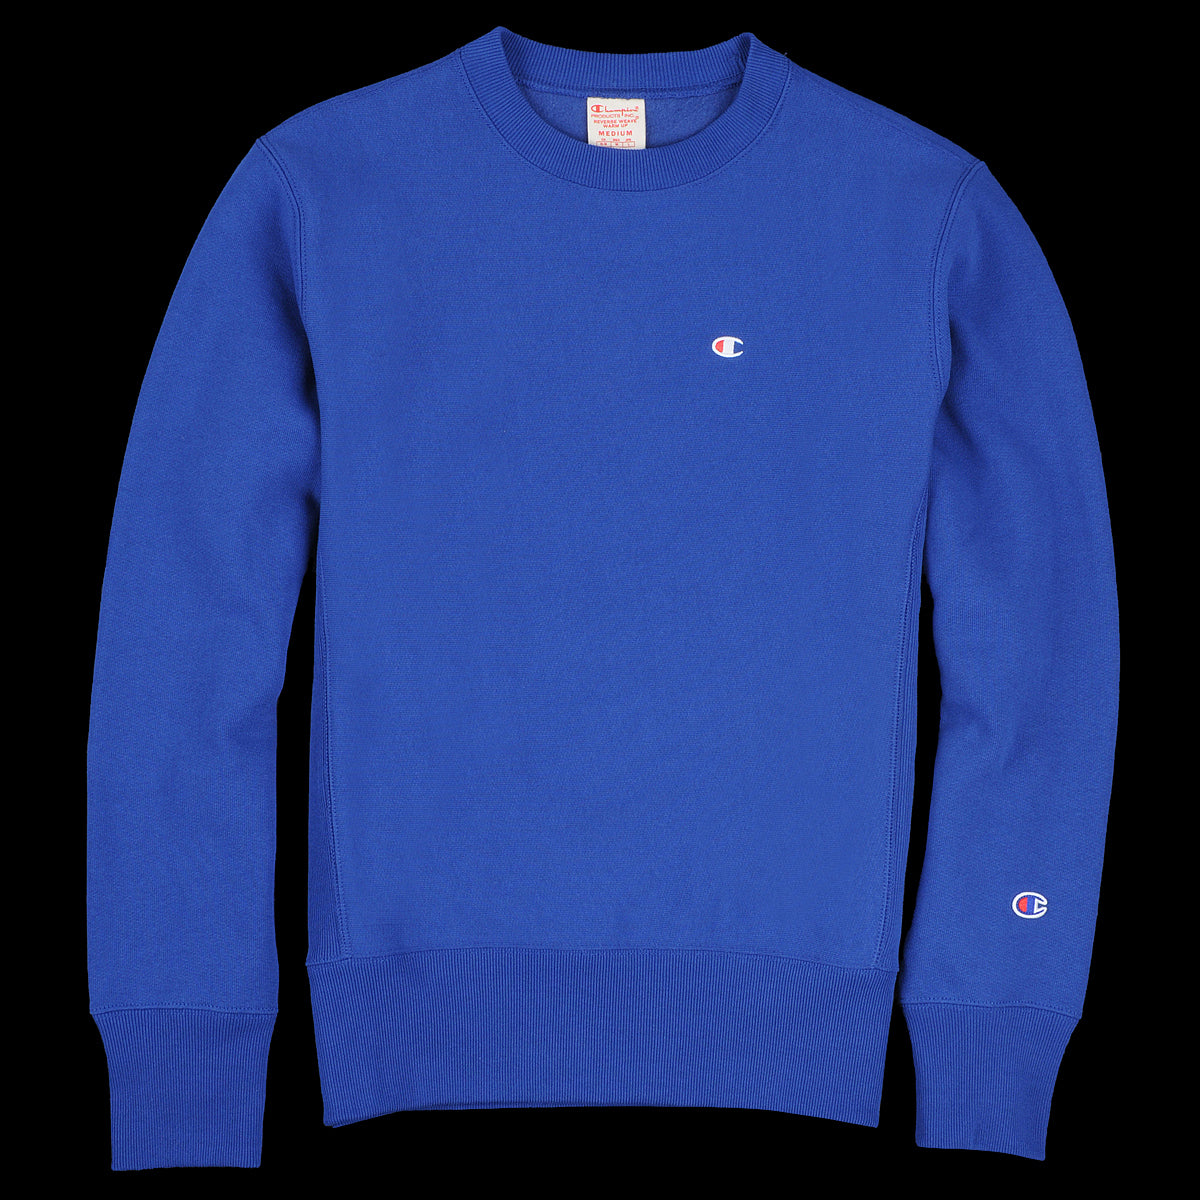 72d5a116de46 Champion Reverse Weave - Crewneck Sweatshirt in Deep Hotline Blue ...